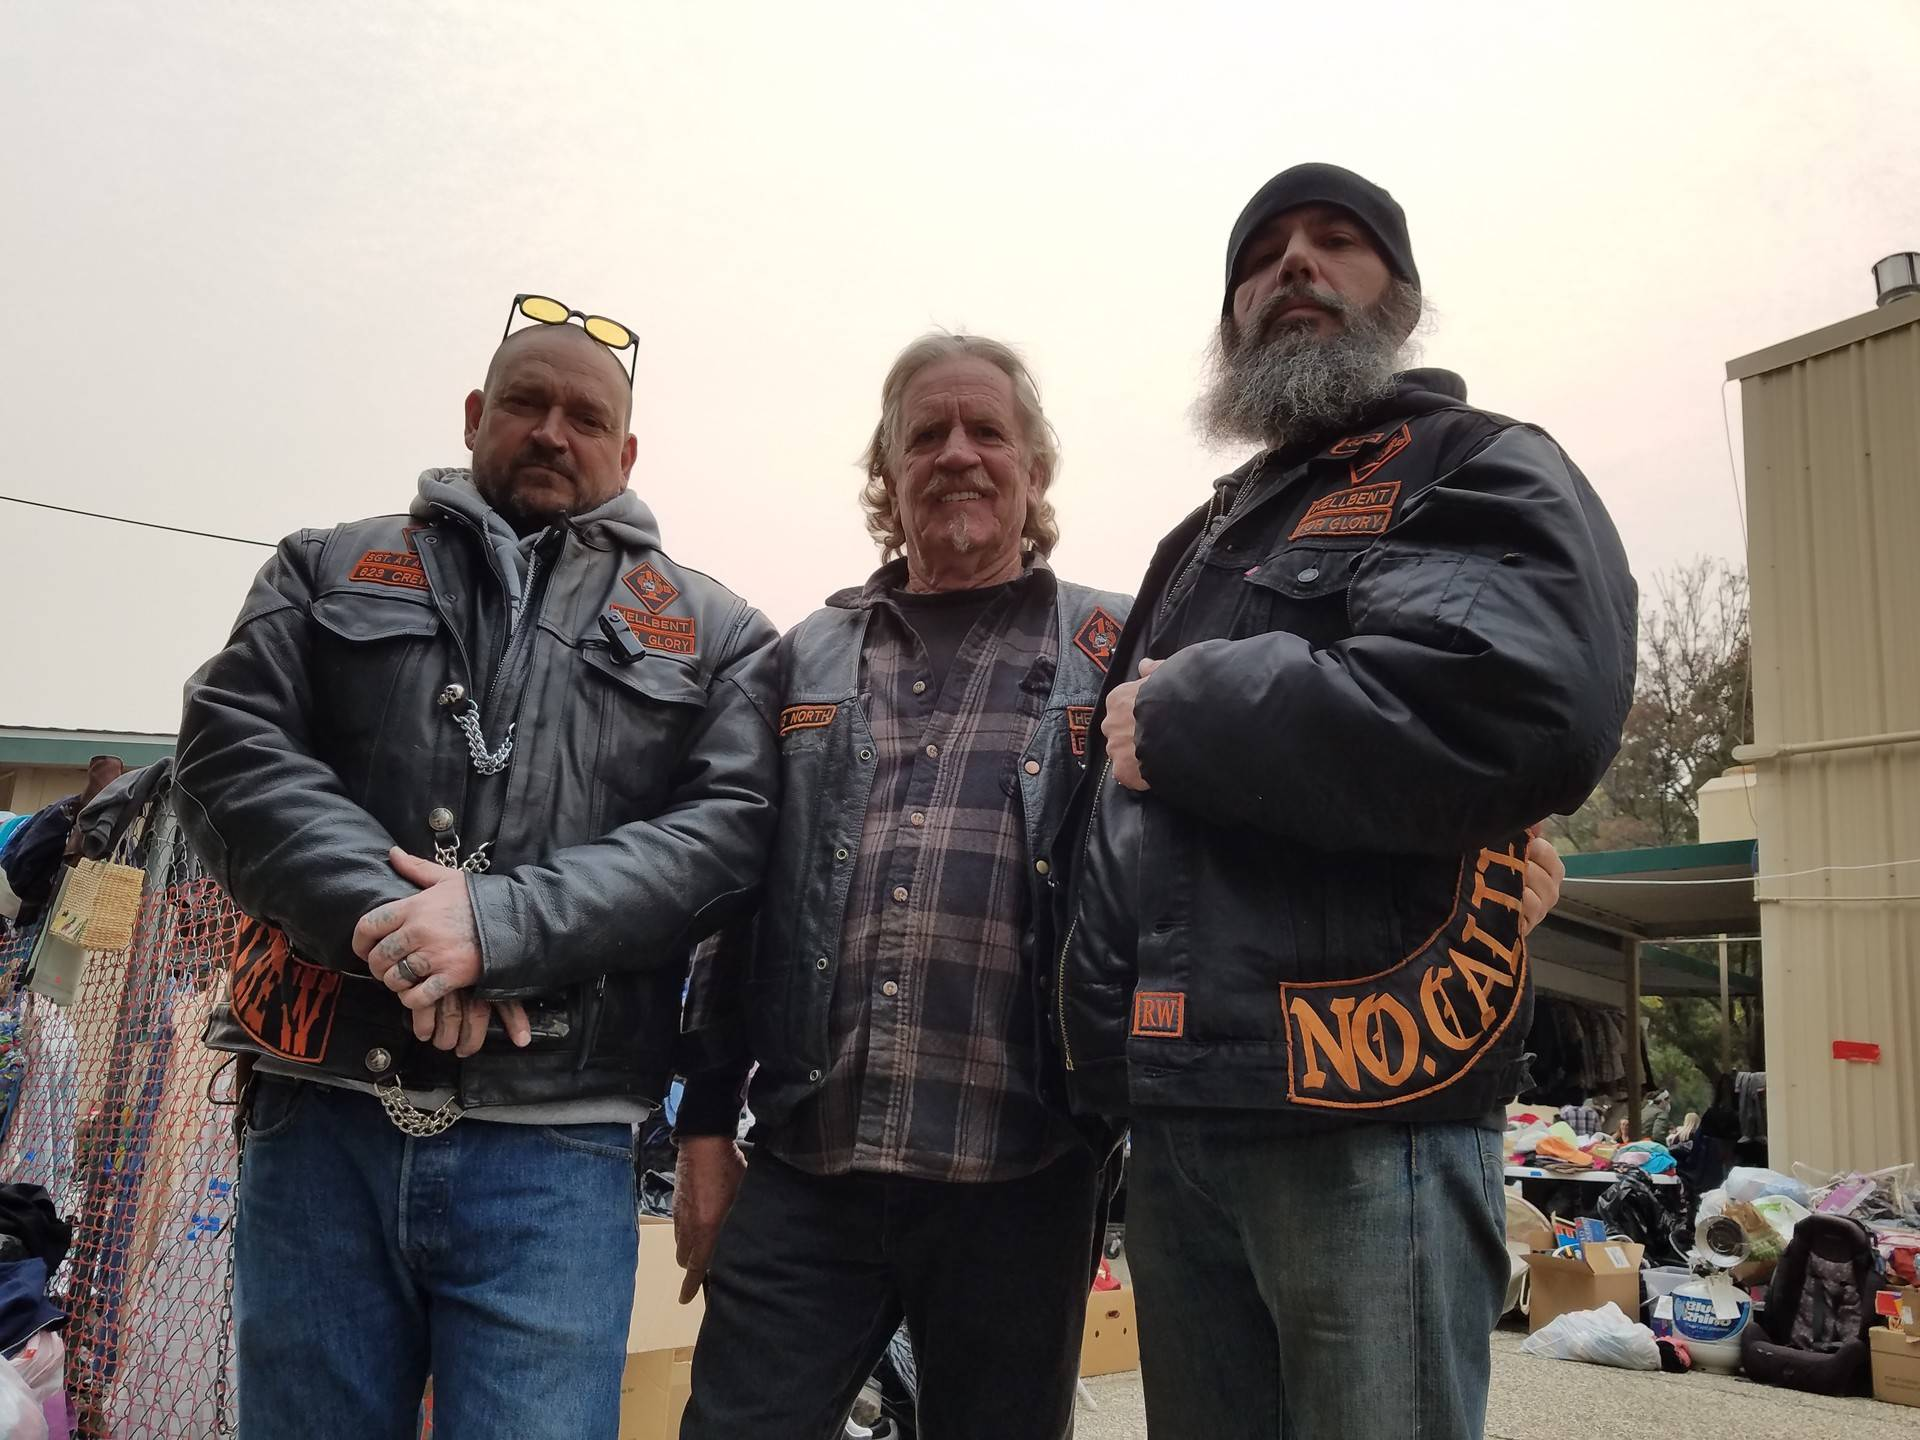 Members of the Hellbent Motorcycle Club 823 Chapter were handling security for a Camp Fire shelter at the East Avenue Church in Chico on Nov. 13. Alex Emslie/KQED